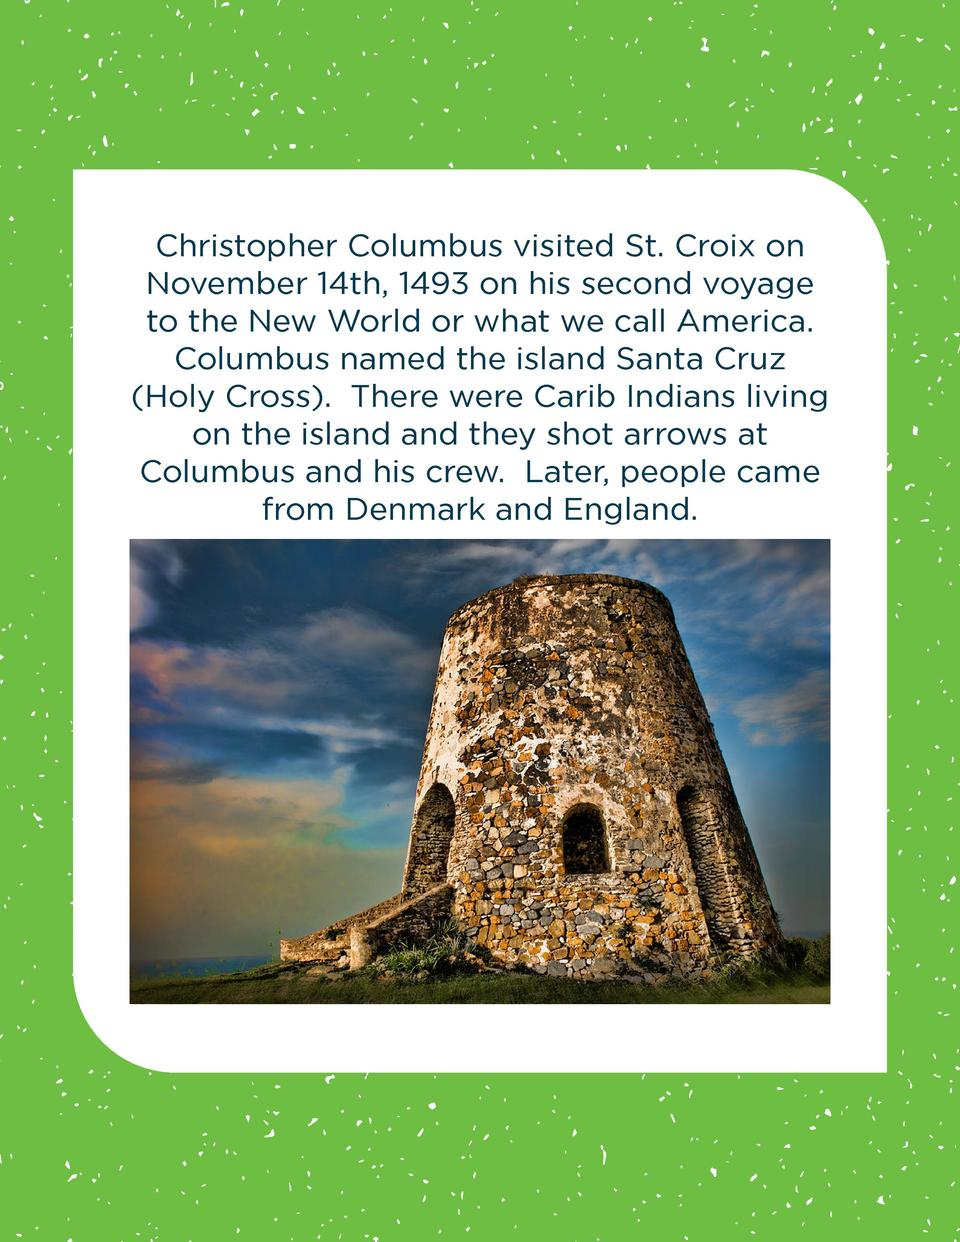 Christopher Columbus visited St. Croix on November 14th, 1493 on his second voyage to the New World or what we call Americ...